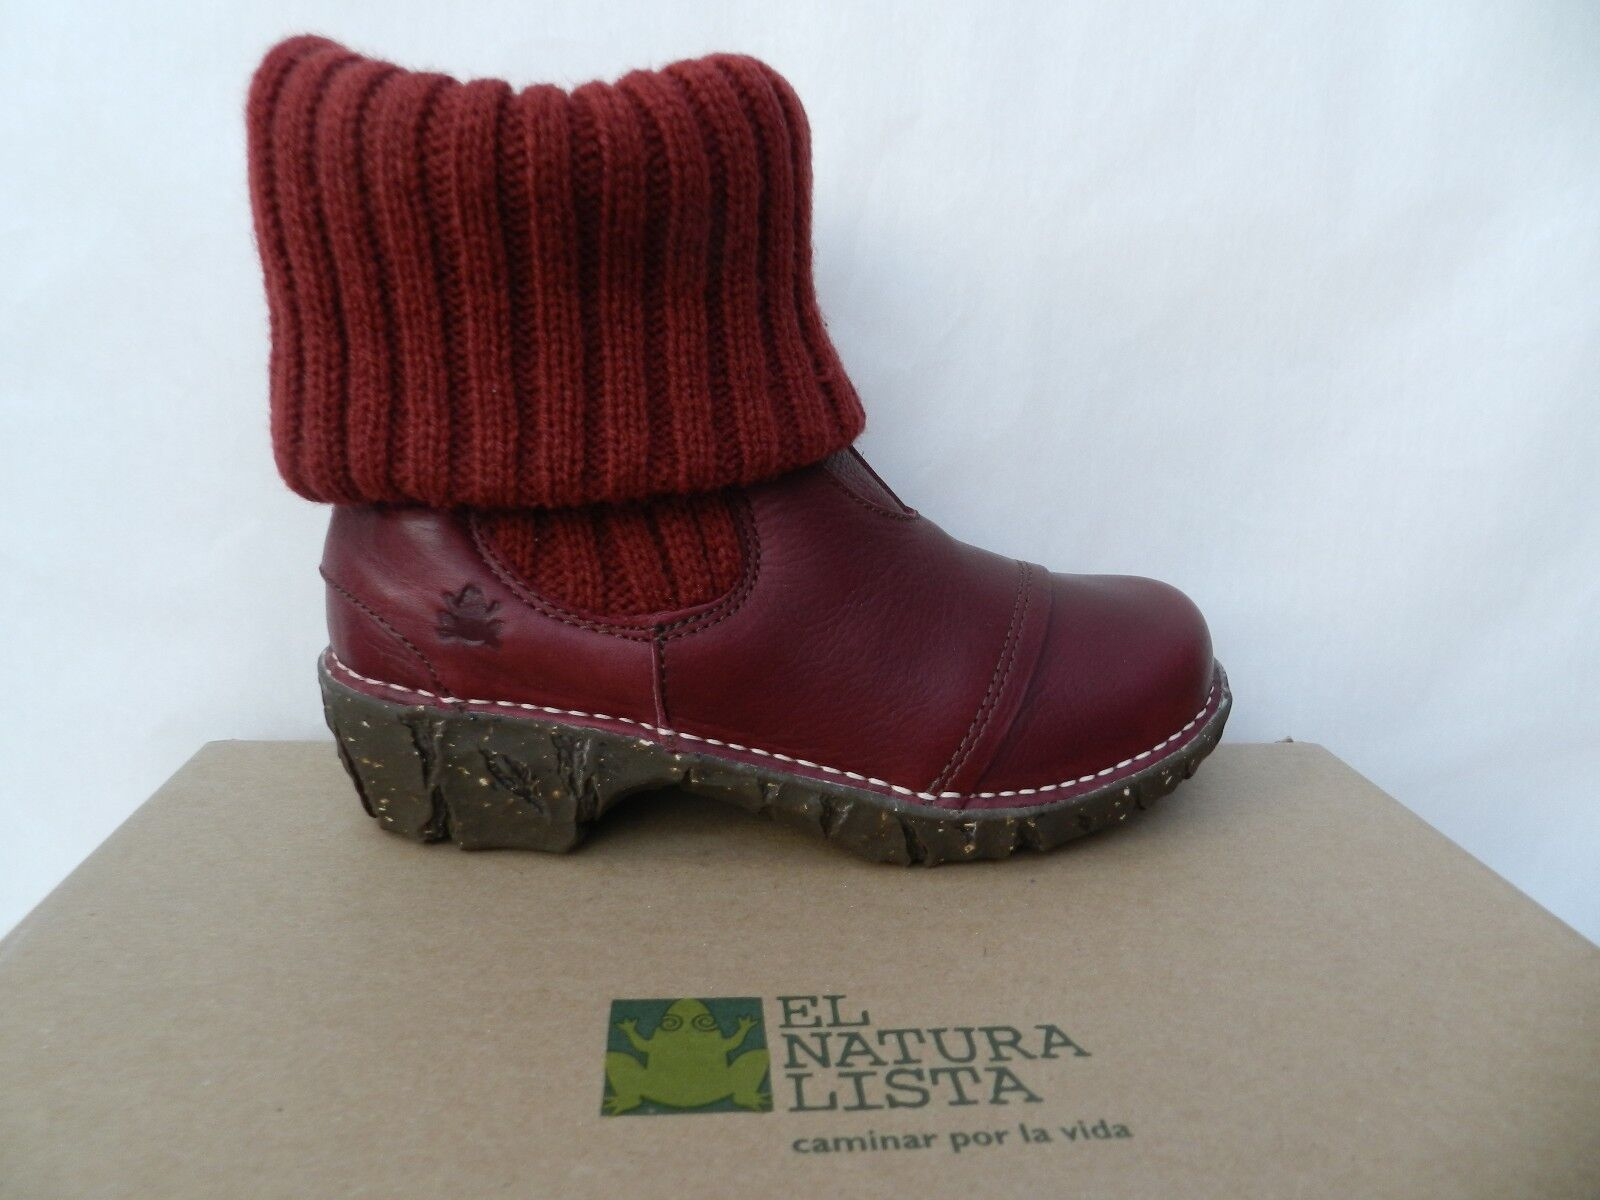 El naturalista like 097 womens 36 iggdrasil n097 rioja uk3 new